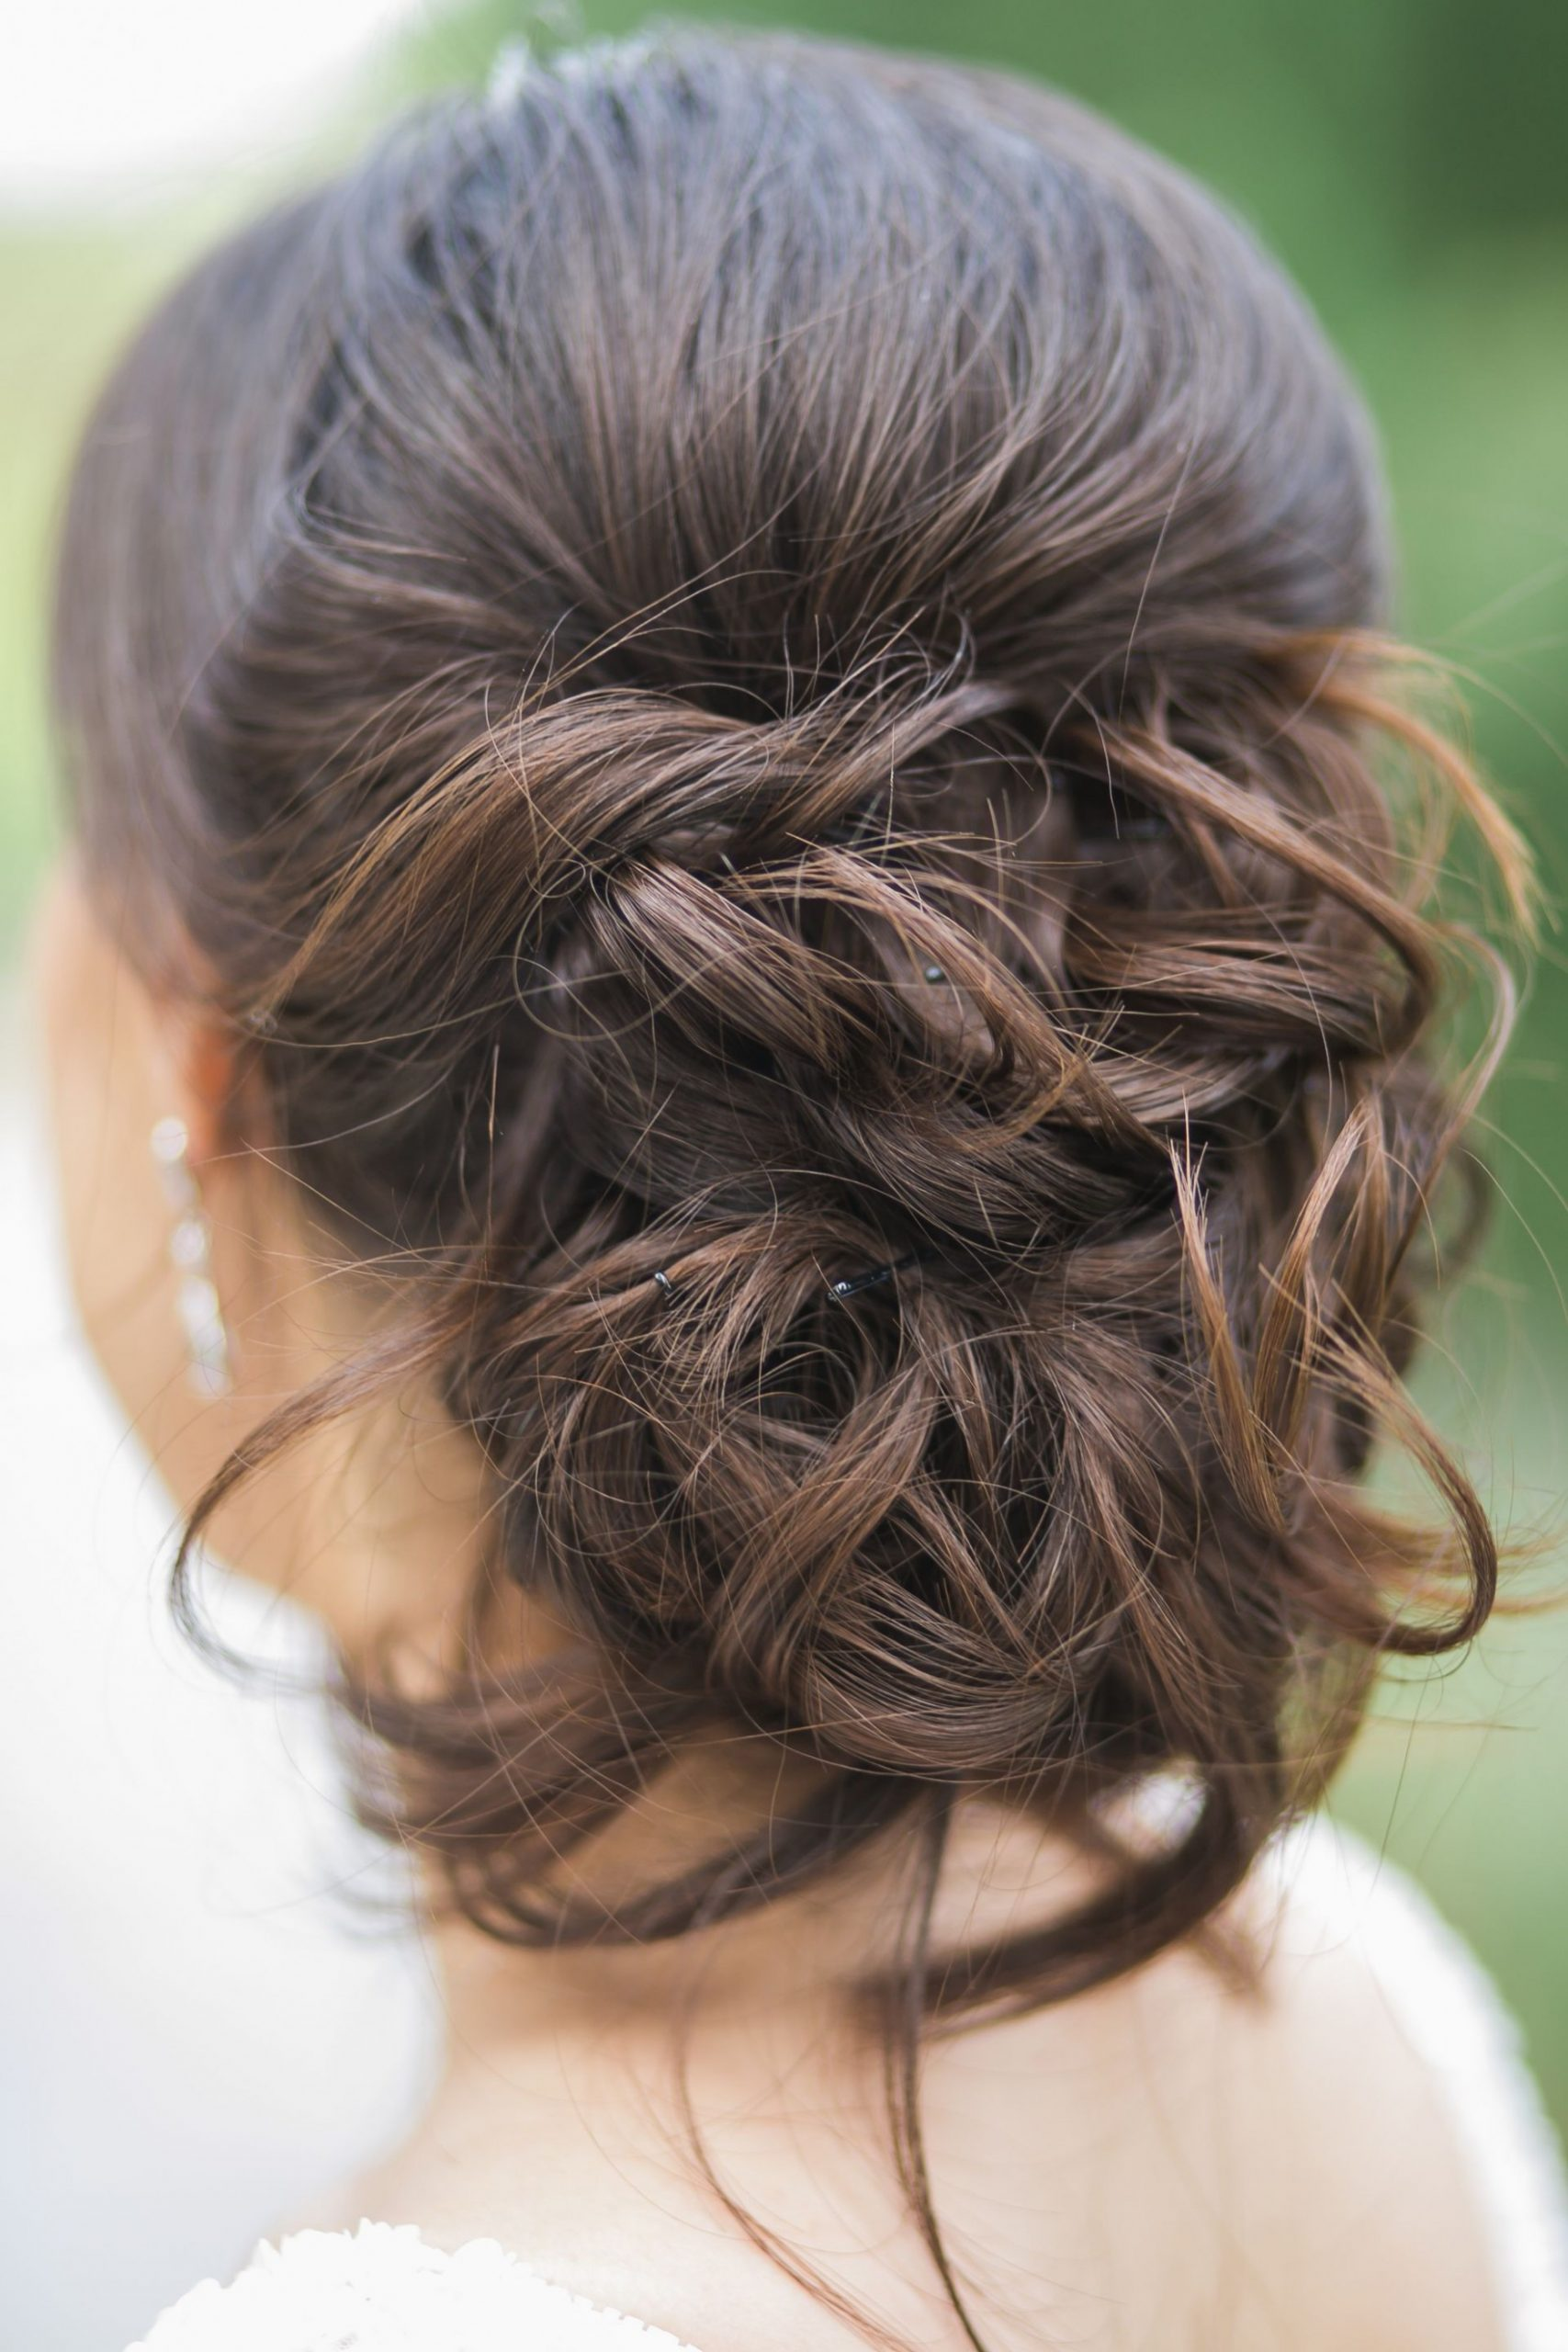 Wedding Hairstyle, Bridal Up Do, Pinned Up Curls, Repin To Your Pinned Up Curls